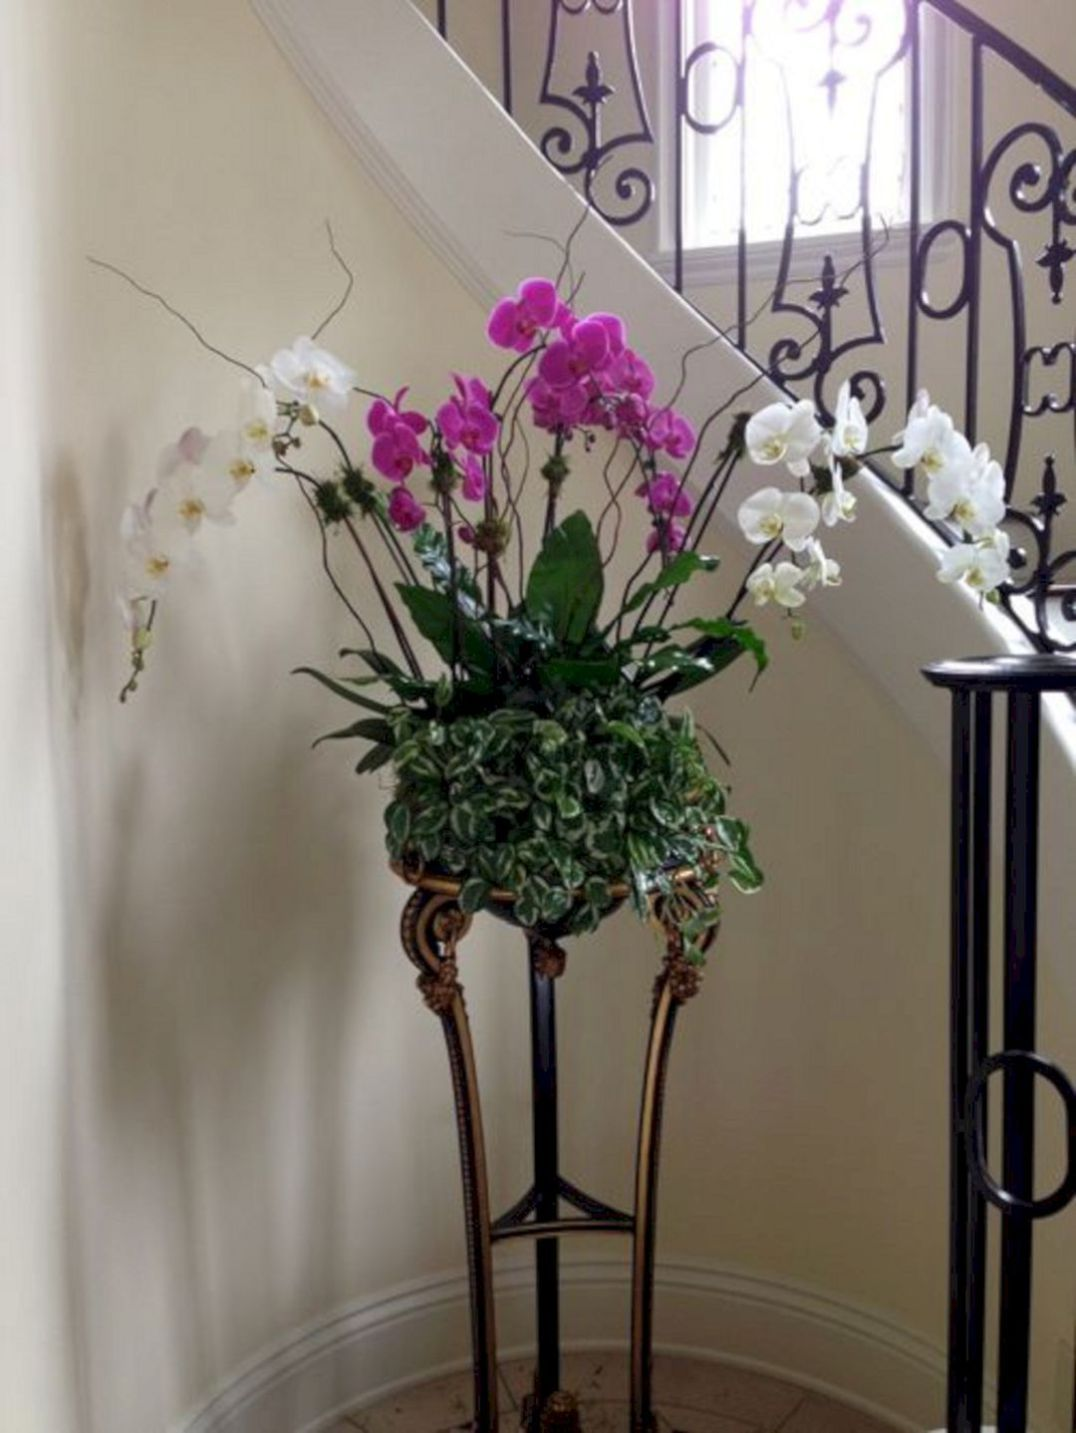 Top orchid arrangements ideas to enhanced your home beauty